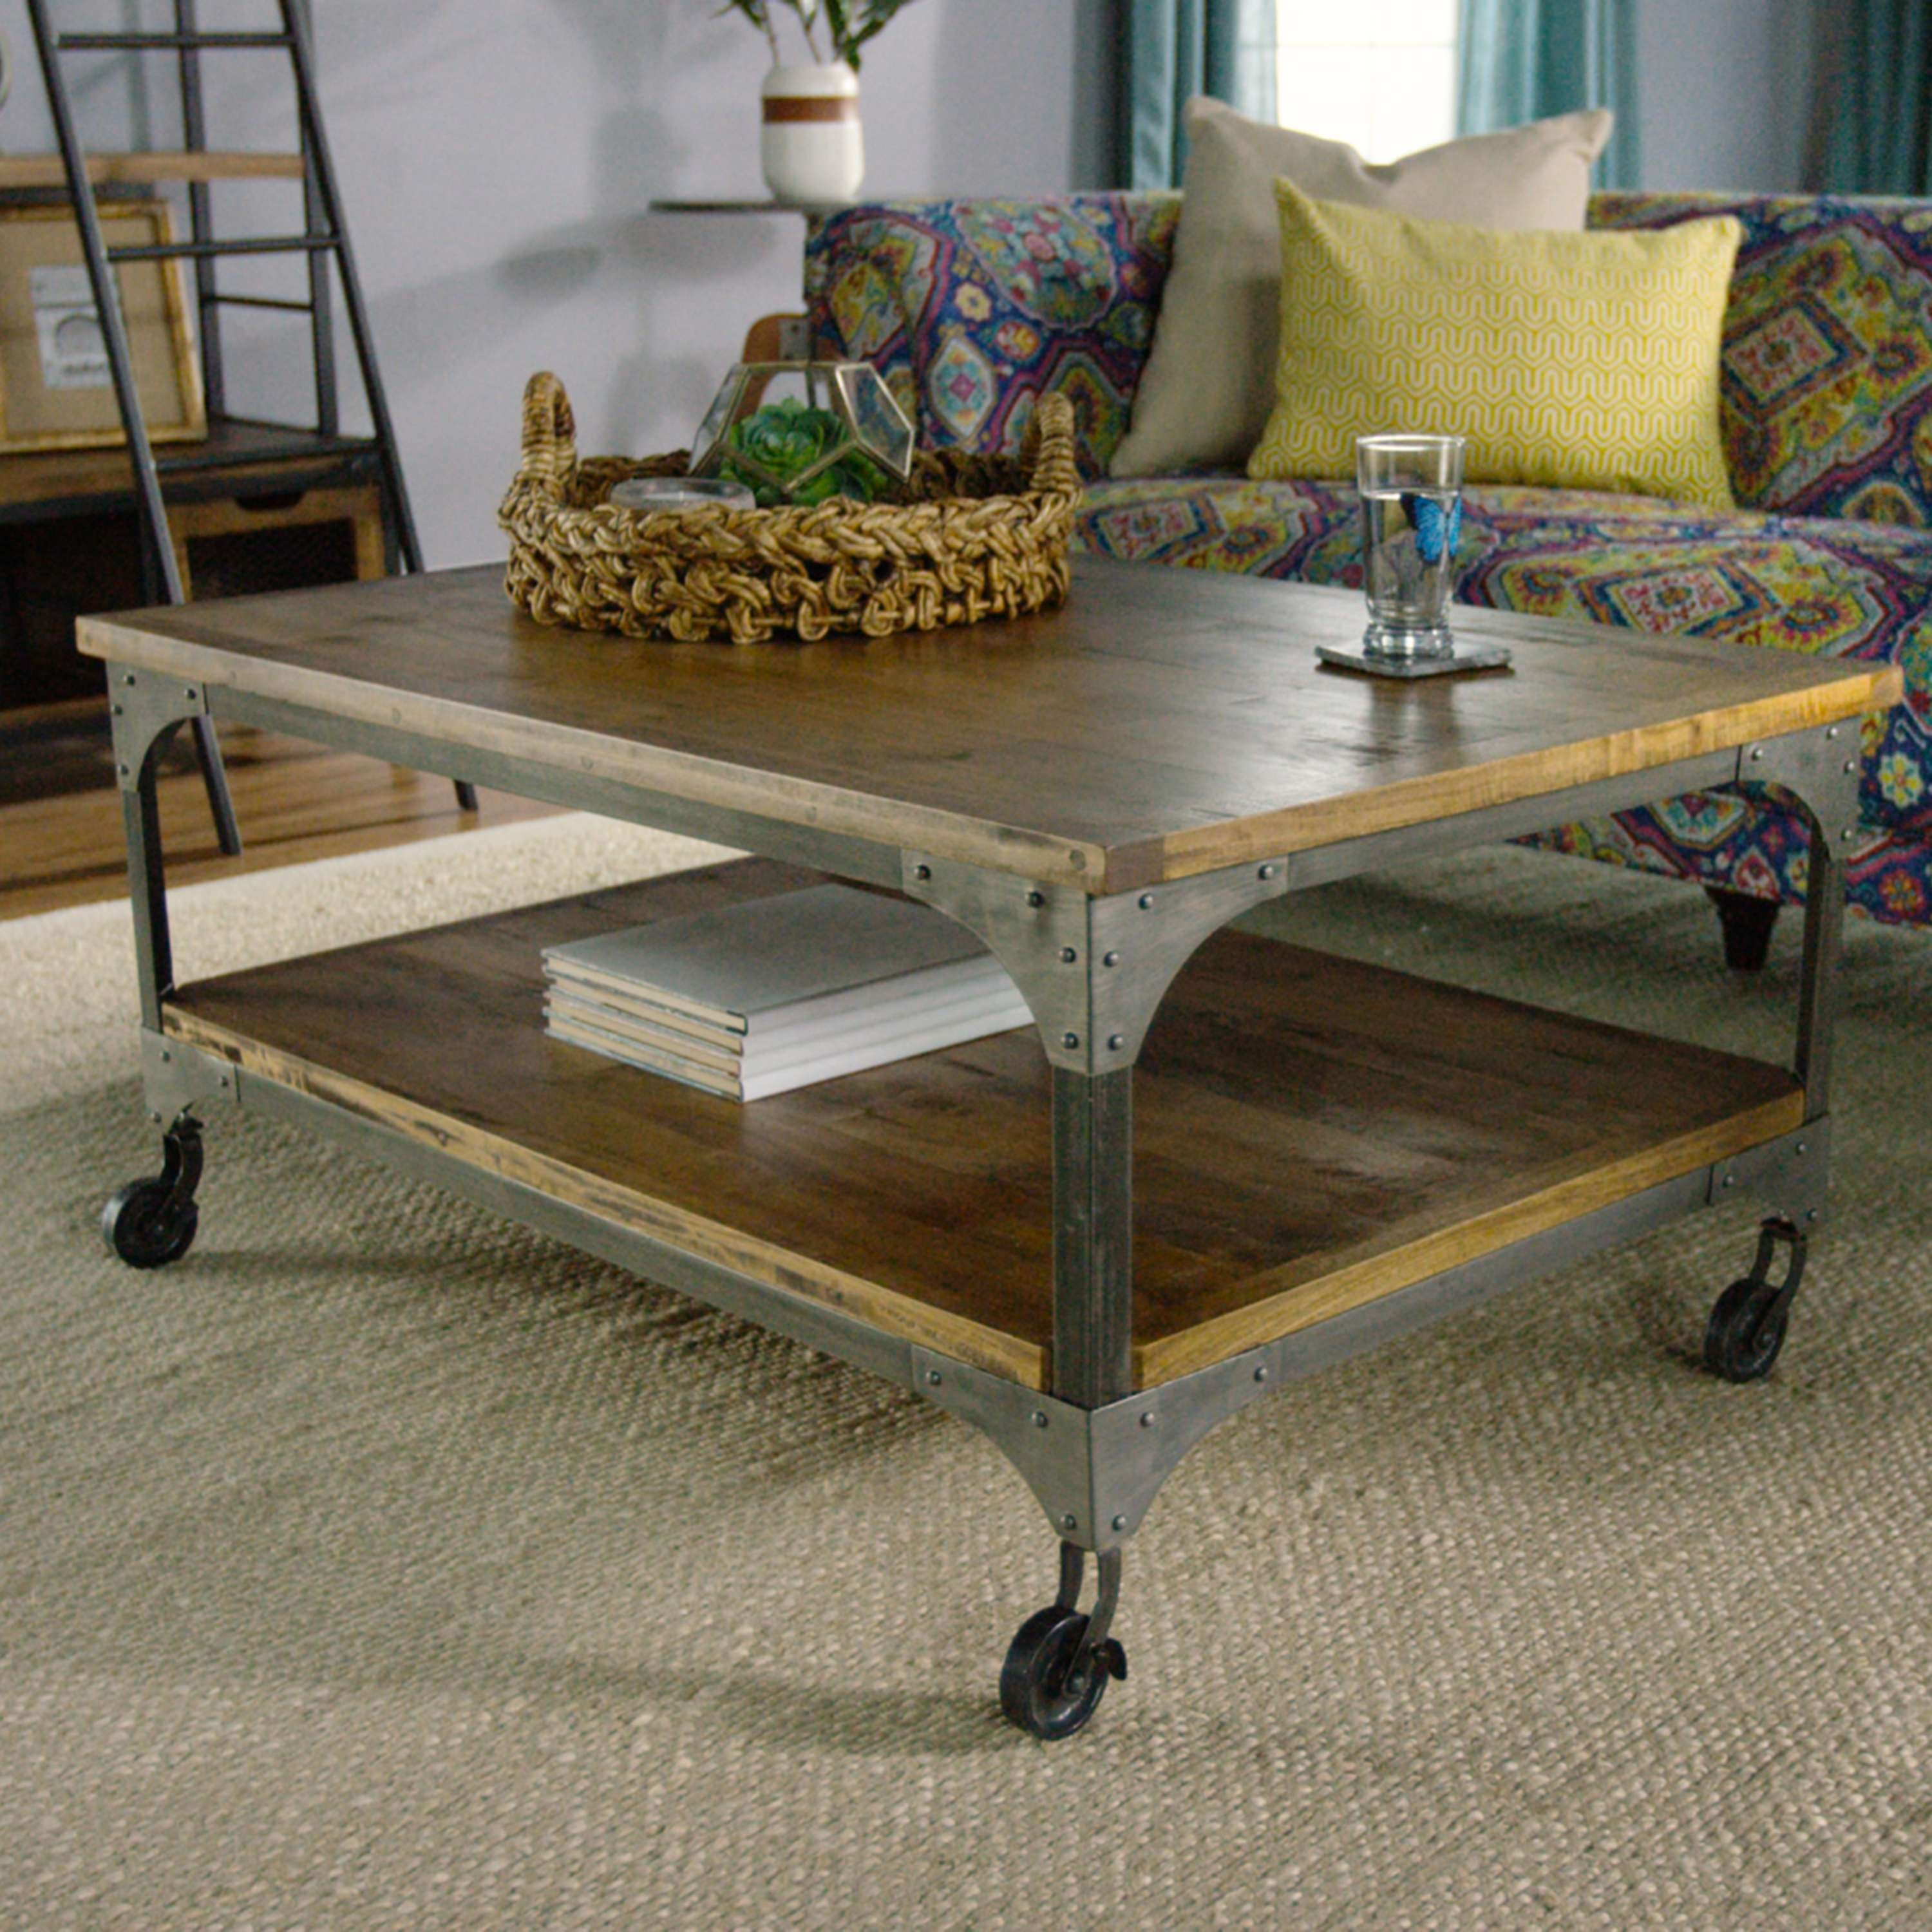 Most Up To Date Rustic Coffee Table With Wheels For Coffee Tables : Rustic Coffee Table With Wheels Lift Top Coffee (View 13 of 20)